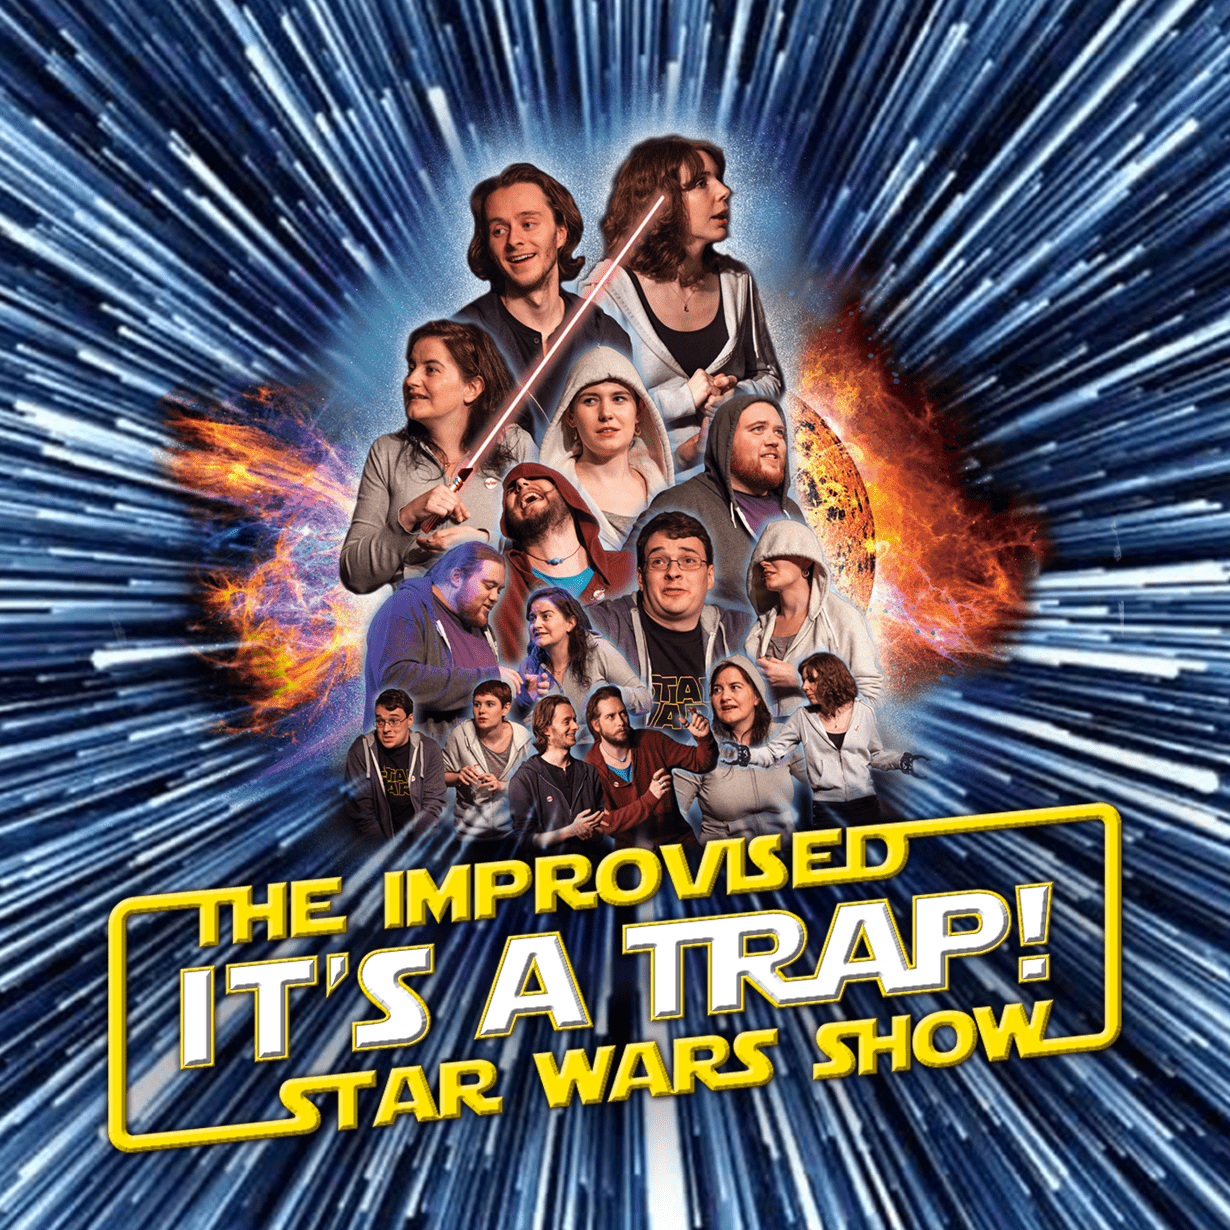 The Improvised Star Wars Show